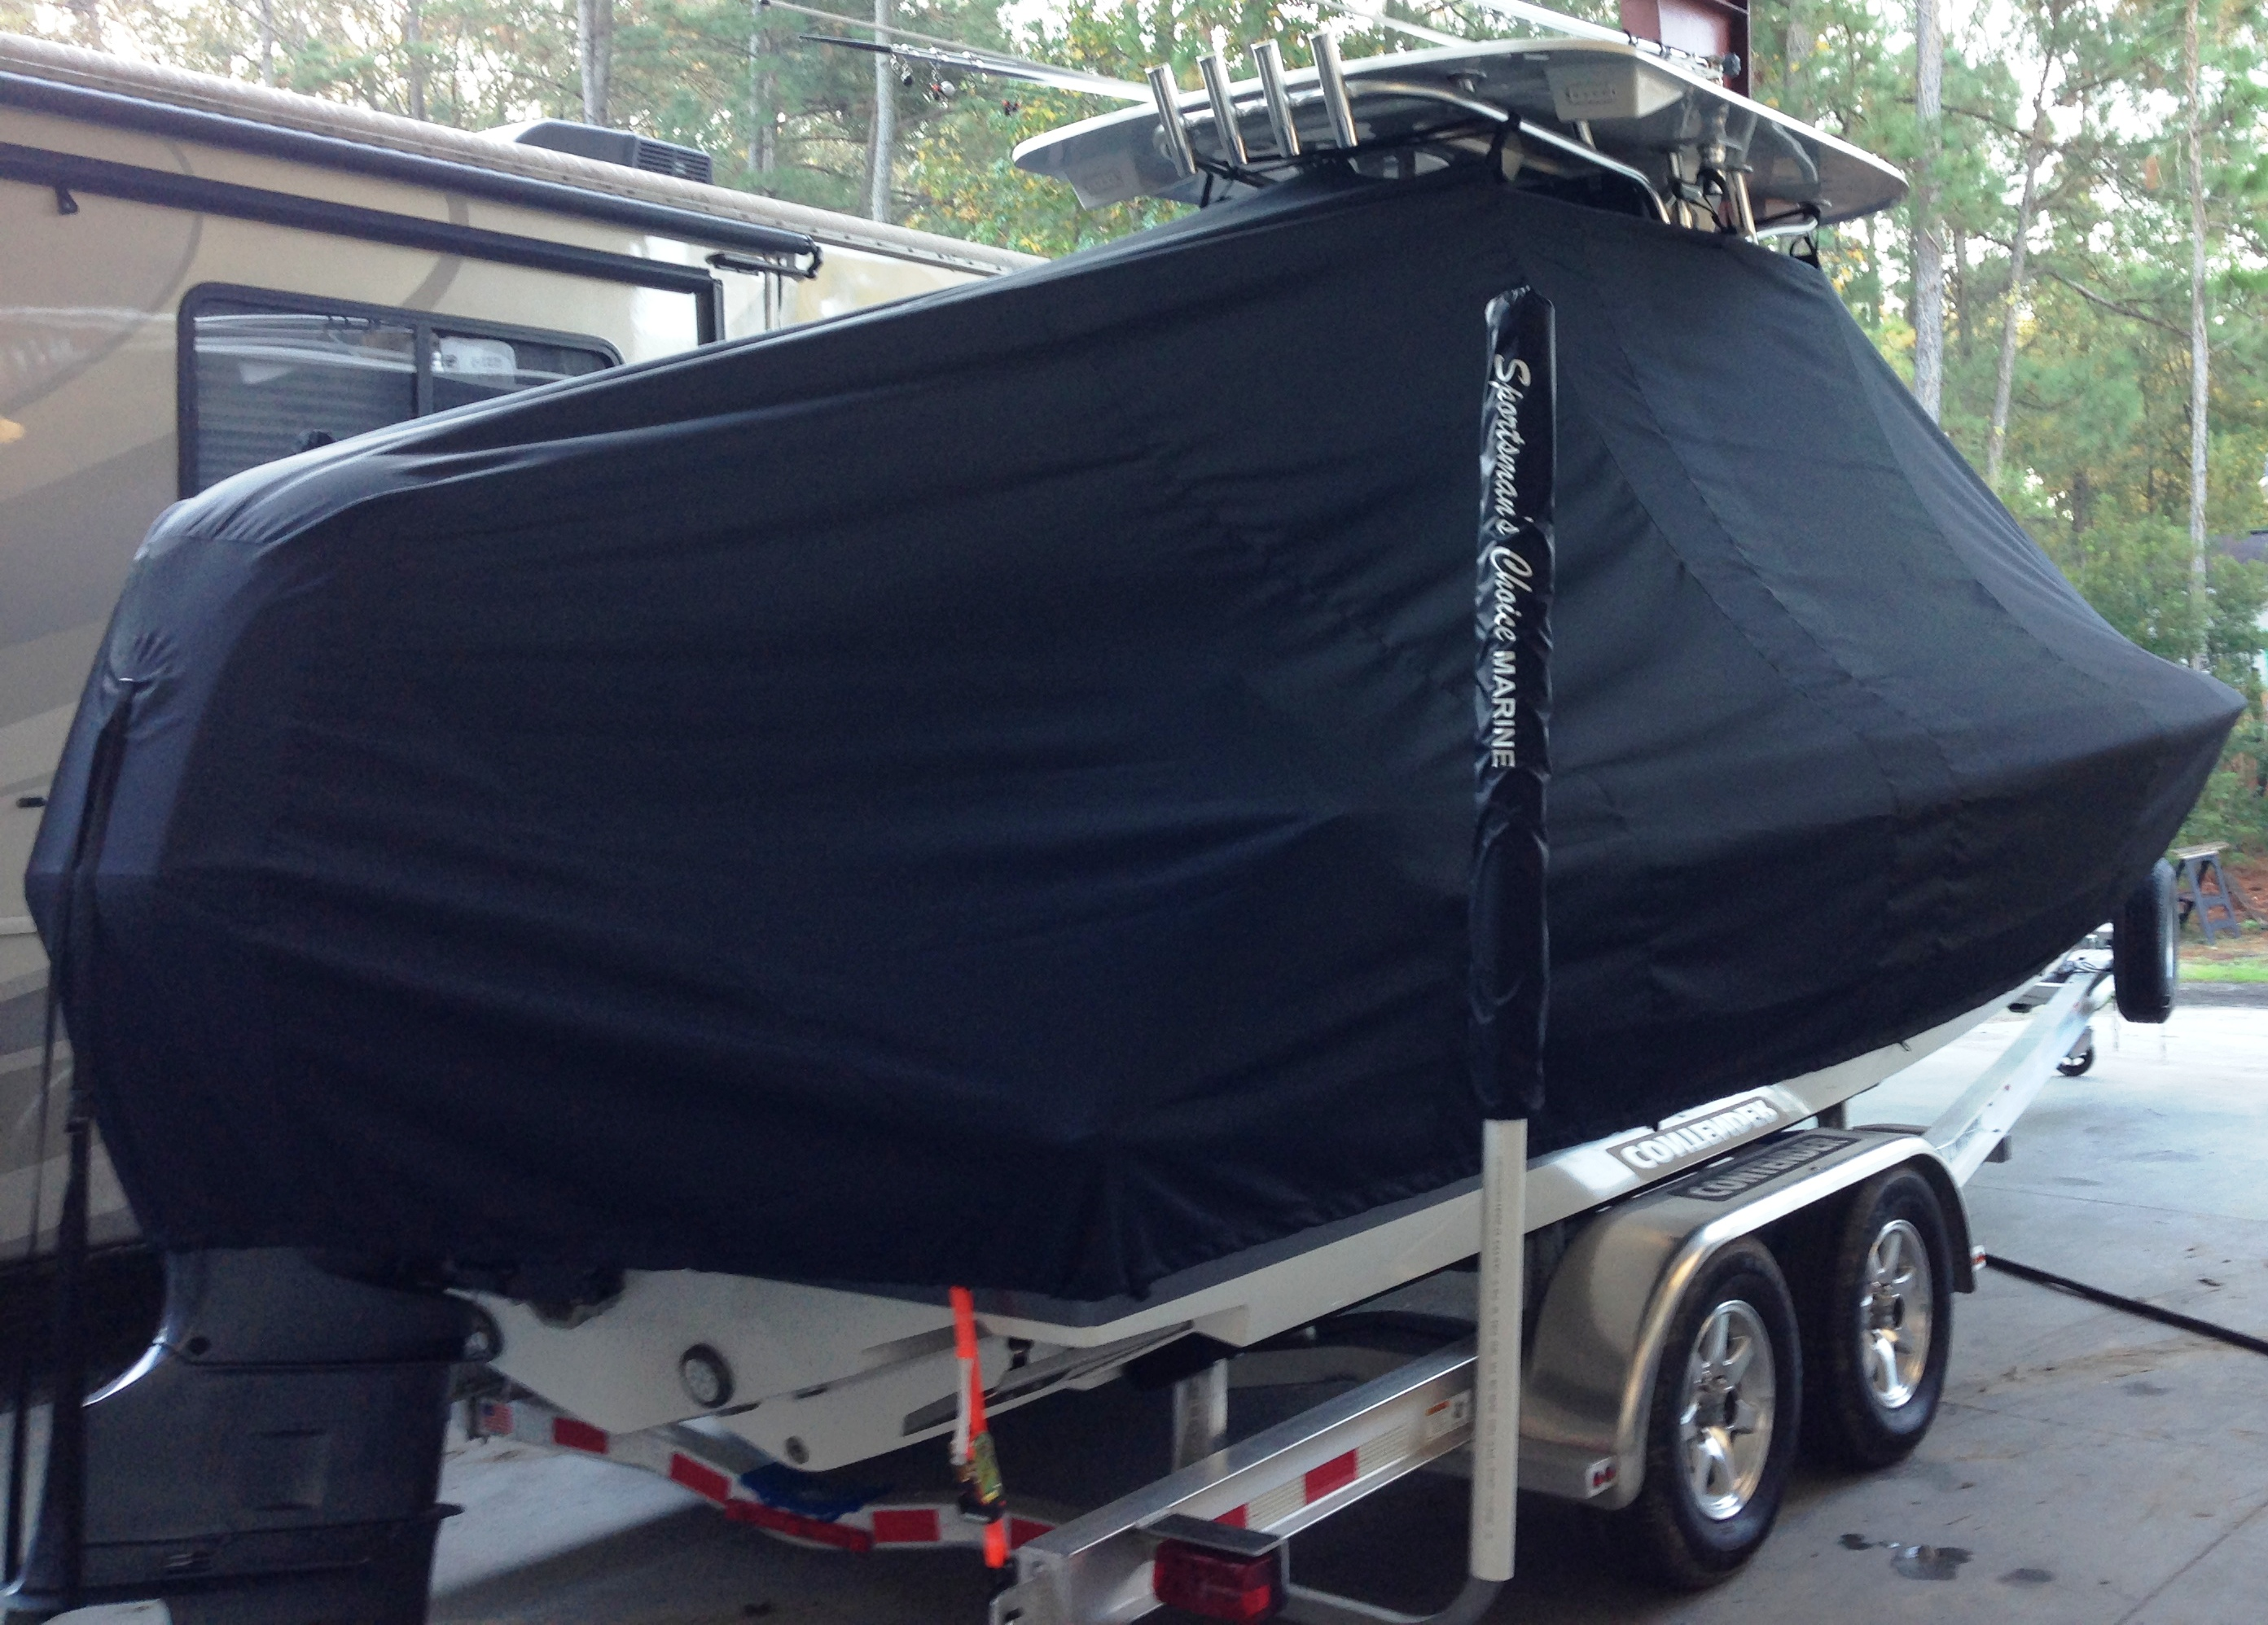 Contender 24 Sport, 20xx, TTopCovers™ T-Top boat cover, starboard rear